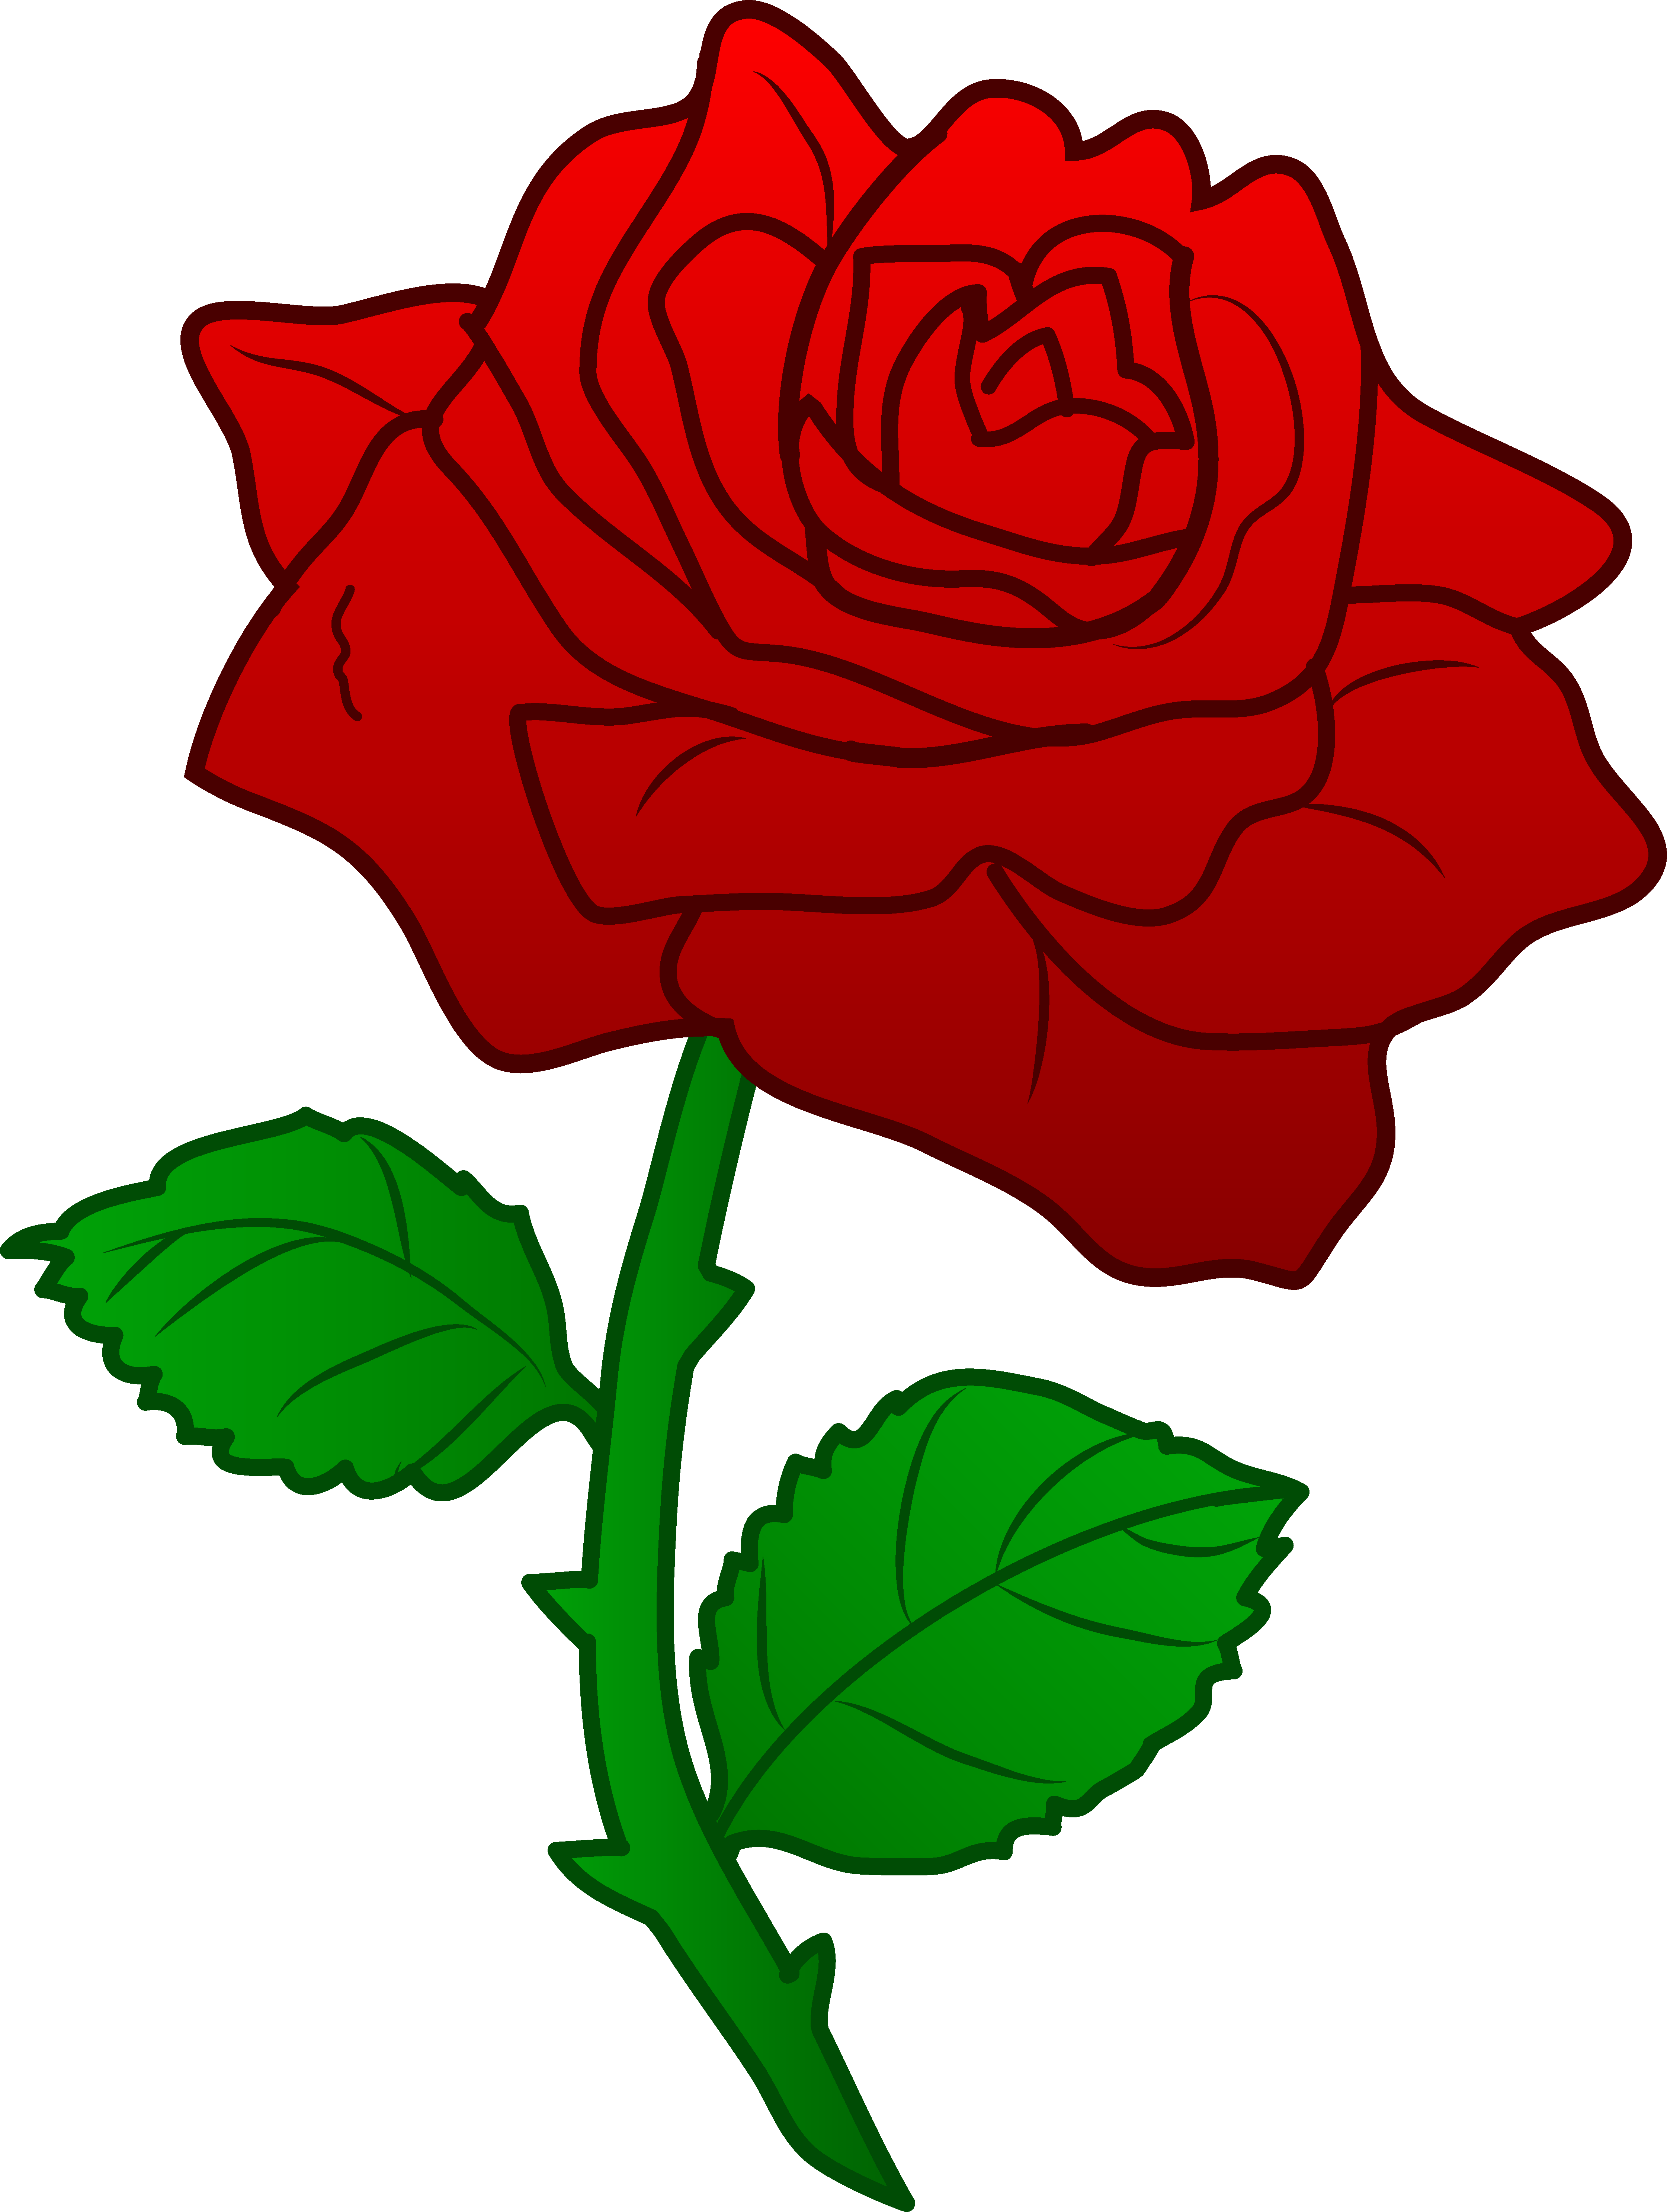 Free Red Roses Clipart, Download Free Clip Art, Free Clip.